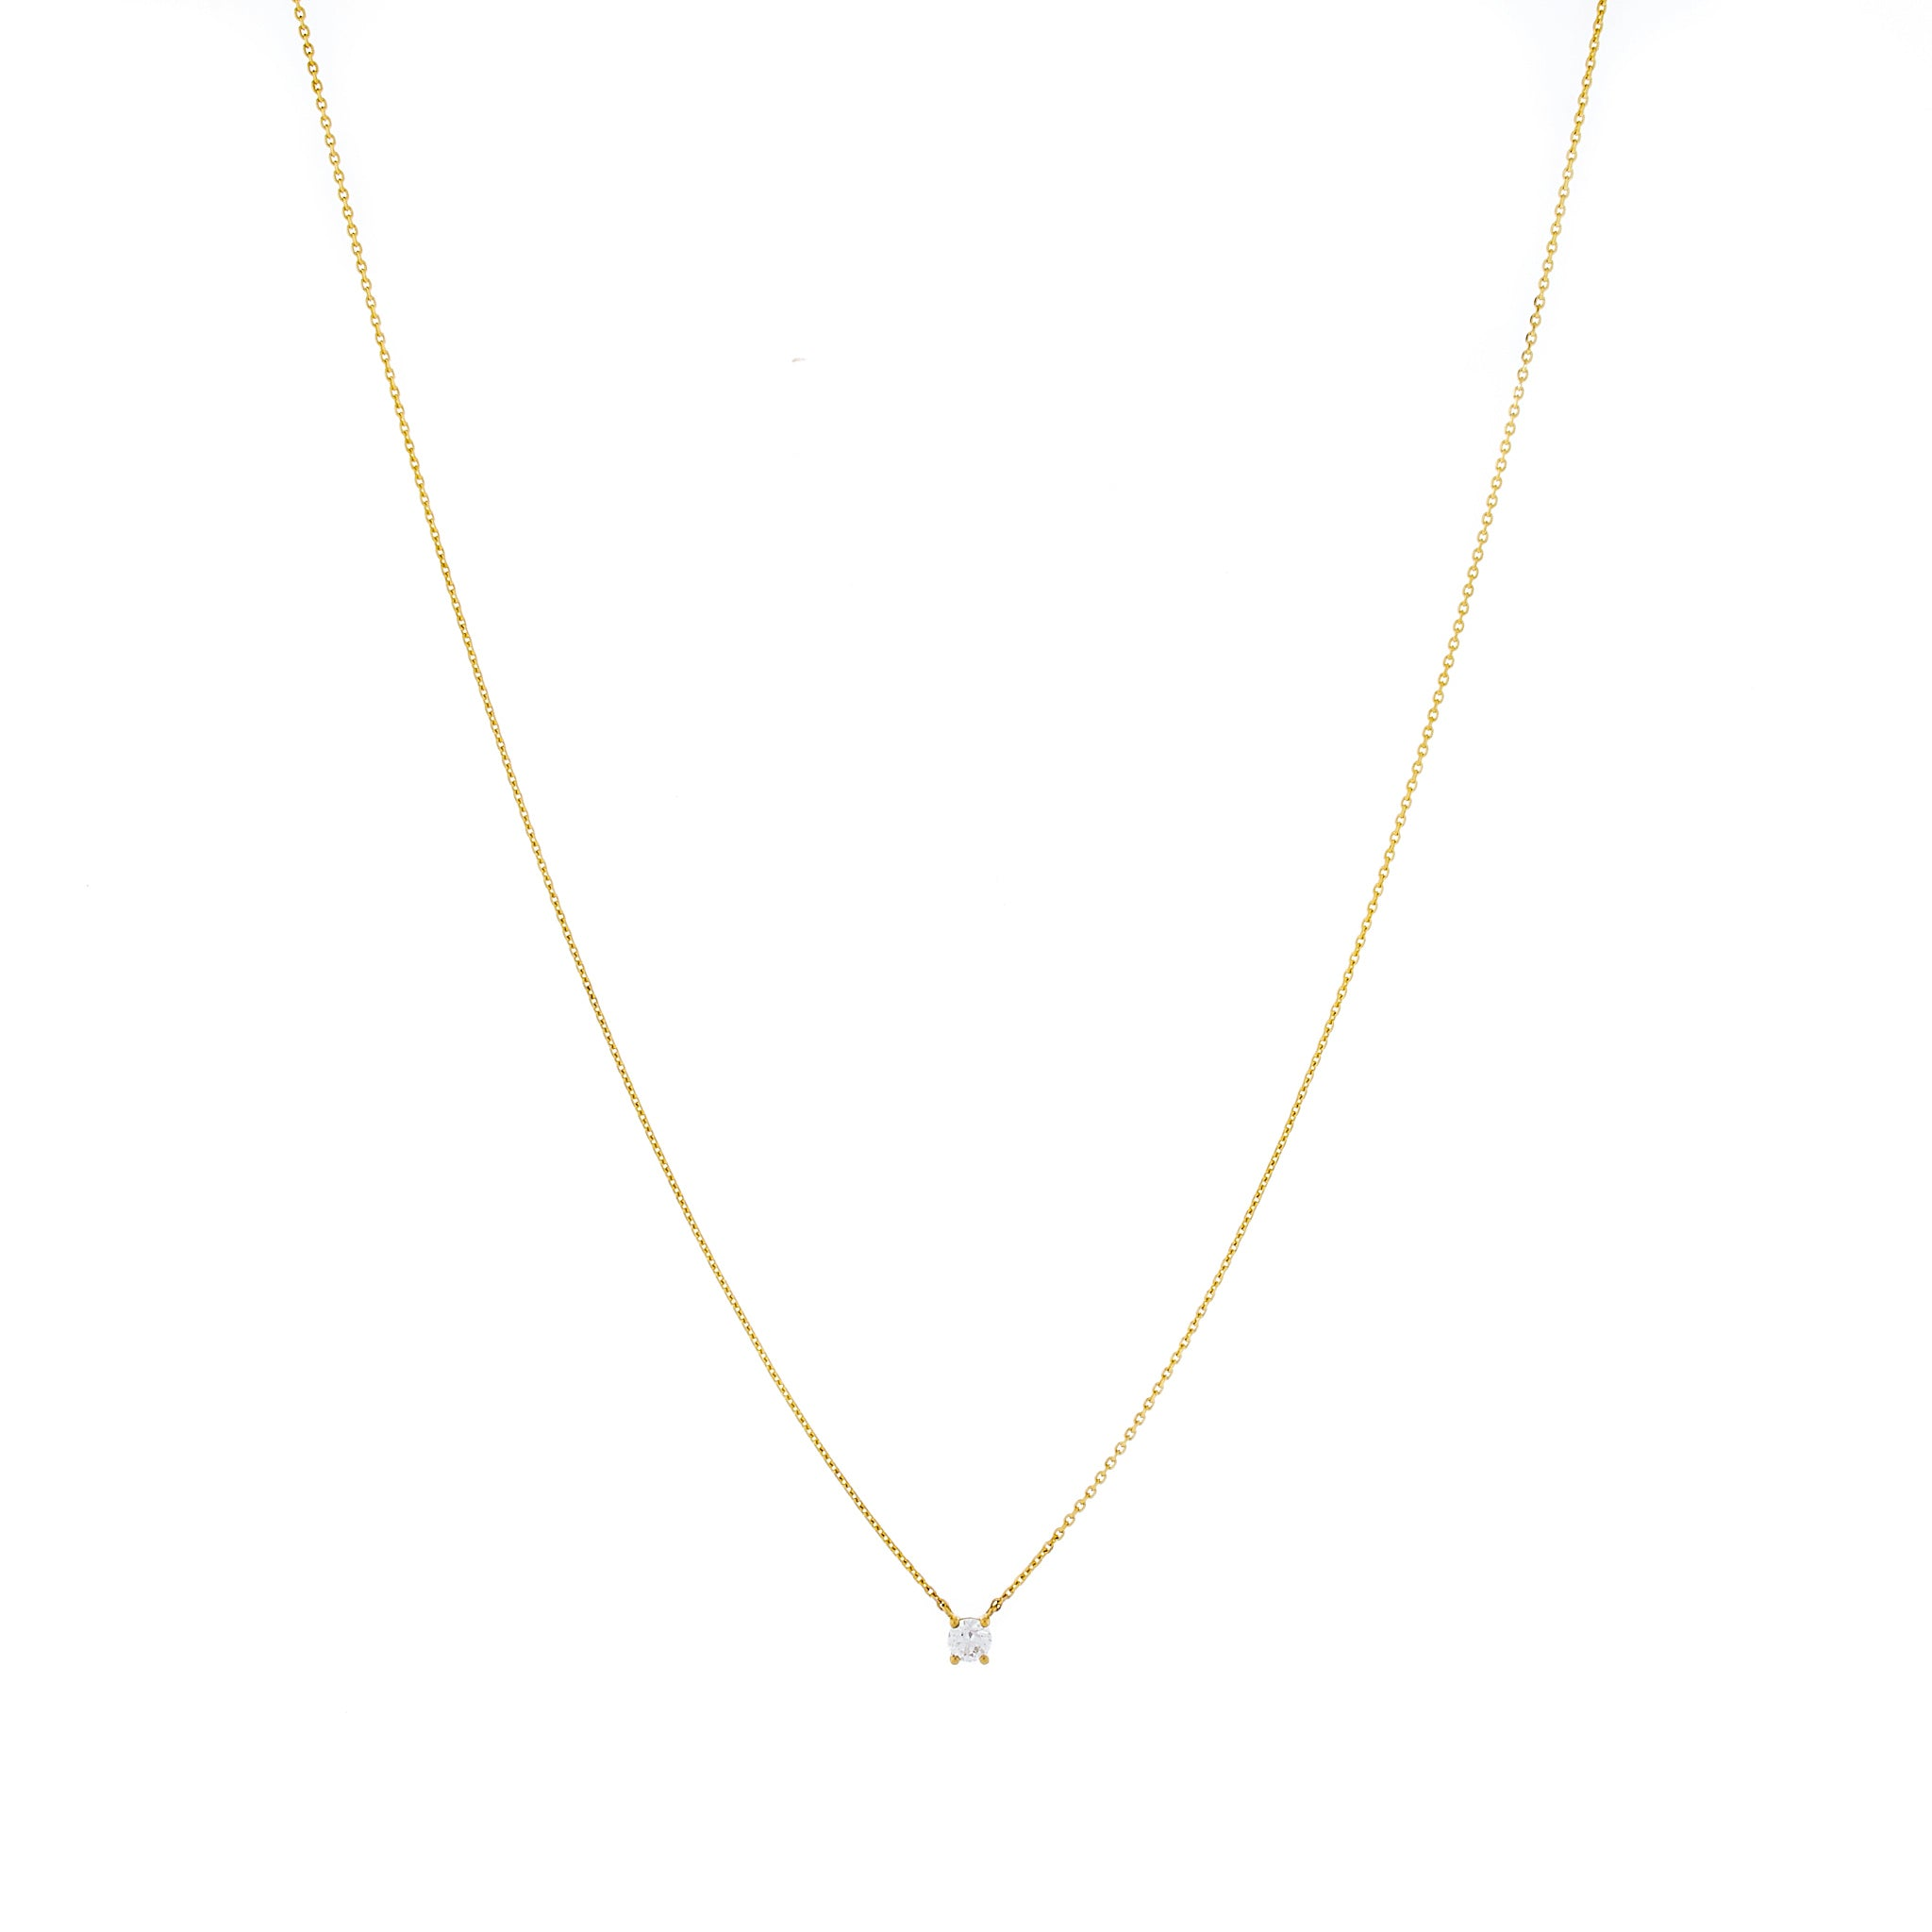 9K Gold Claw-Set Diamond Necklace